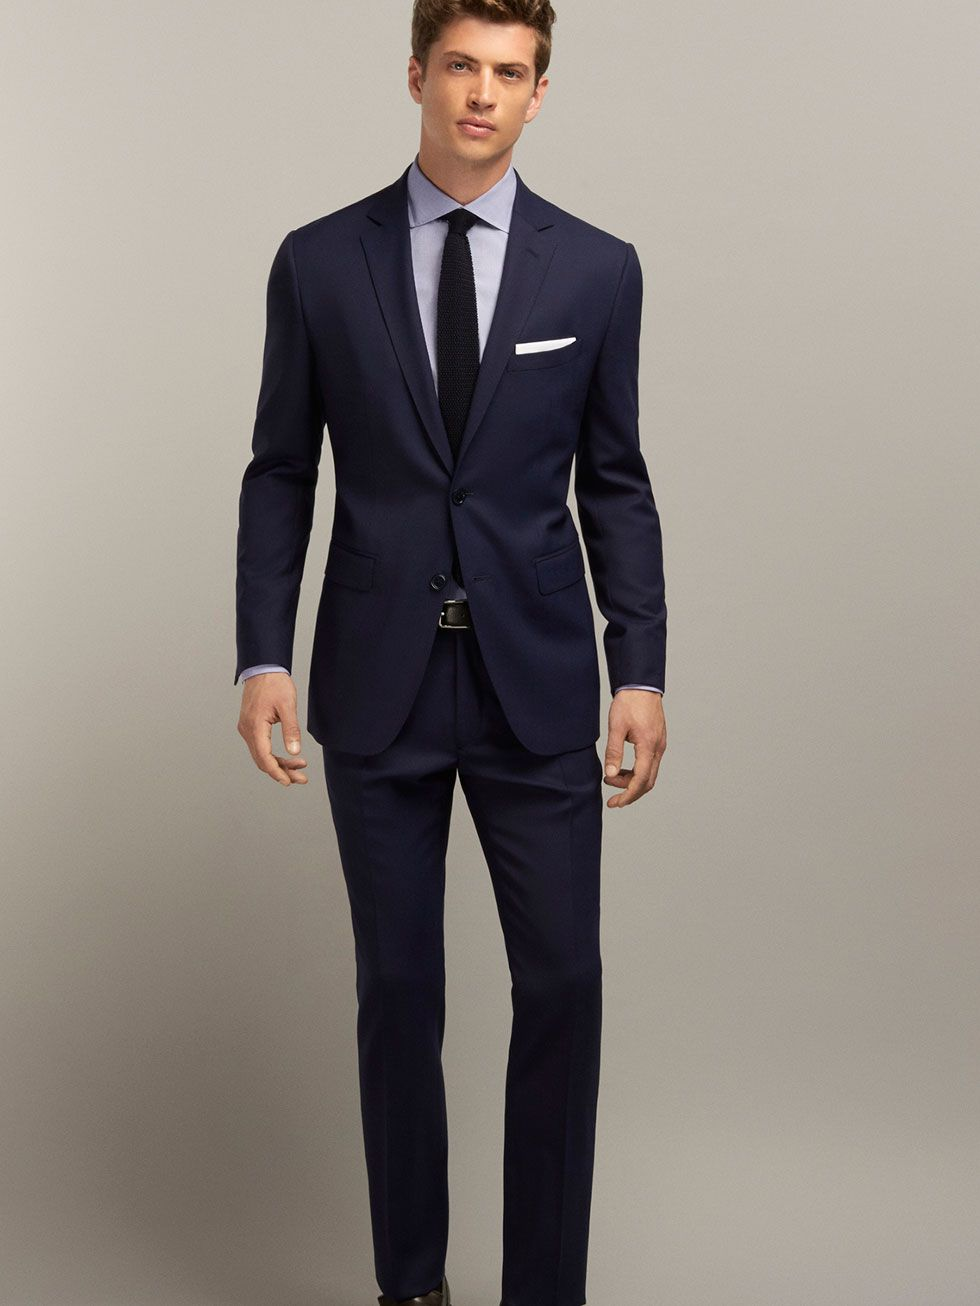 View all - Suits - MEN - Massimo Dutti